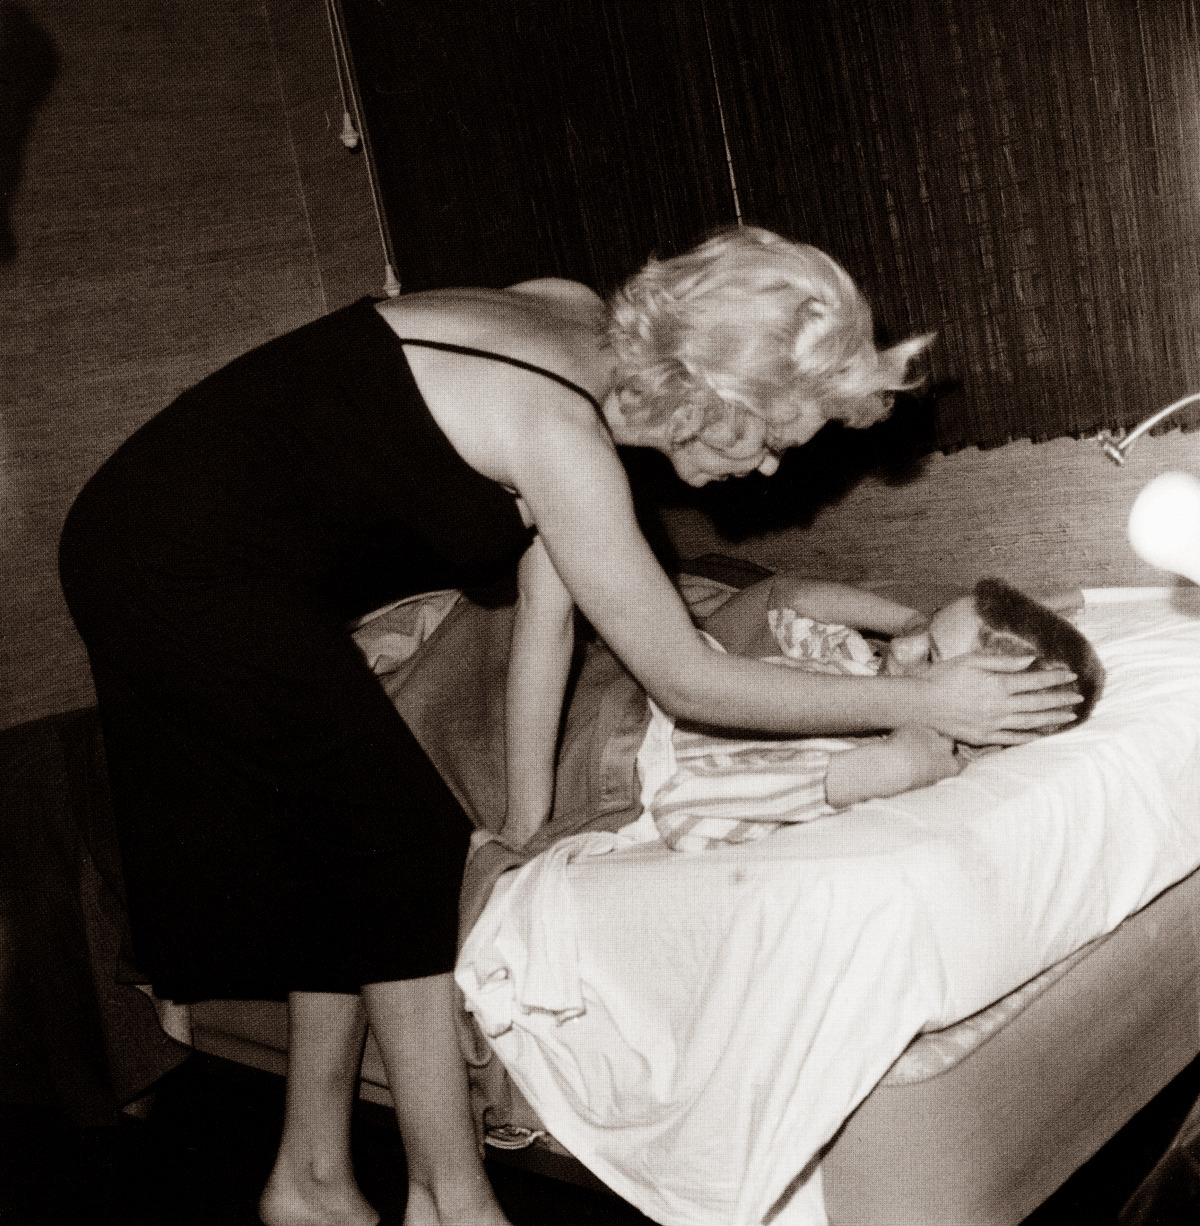 tinasinatra:  Marilyn Monroe puts a little boy to bed. Photographed by Sammy Davis, Jr.